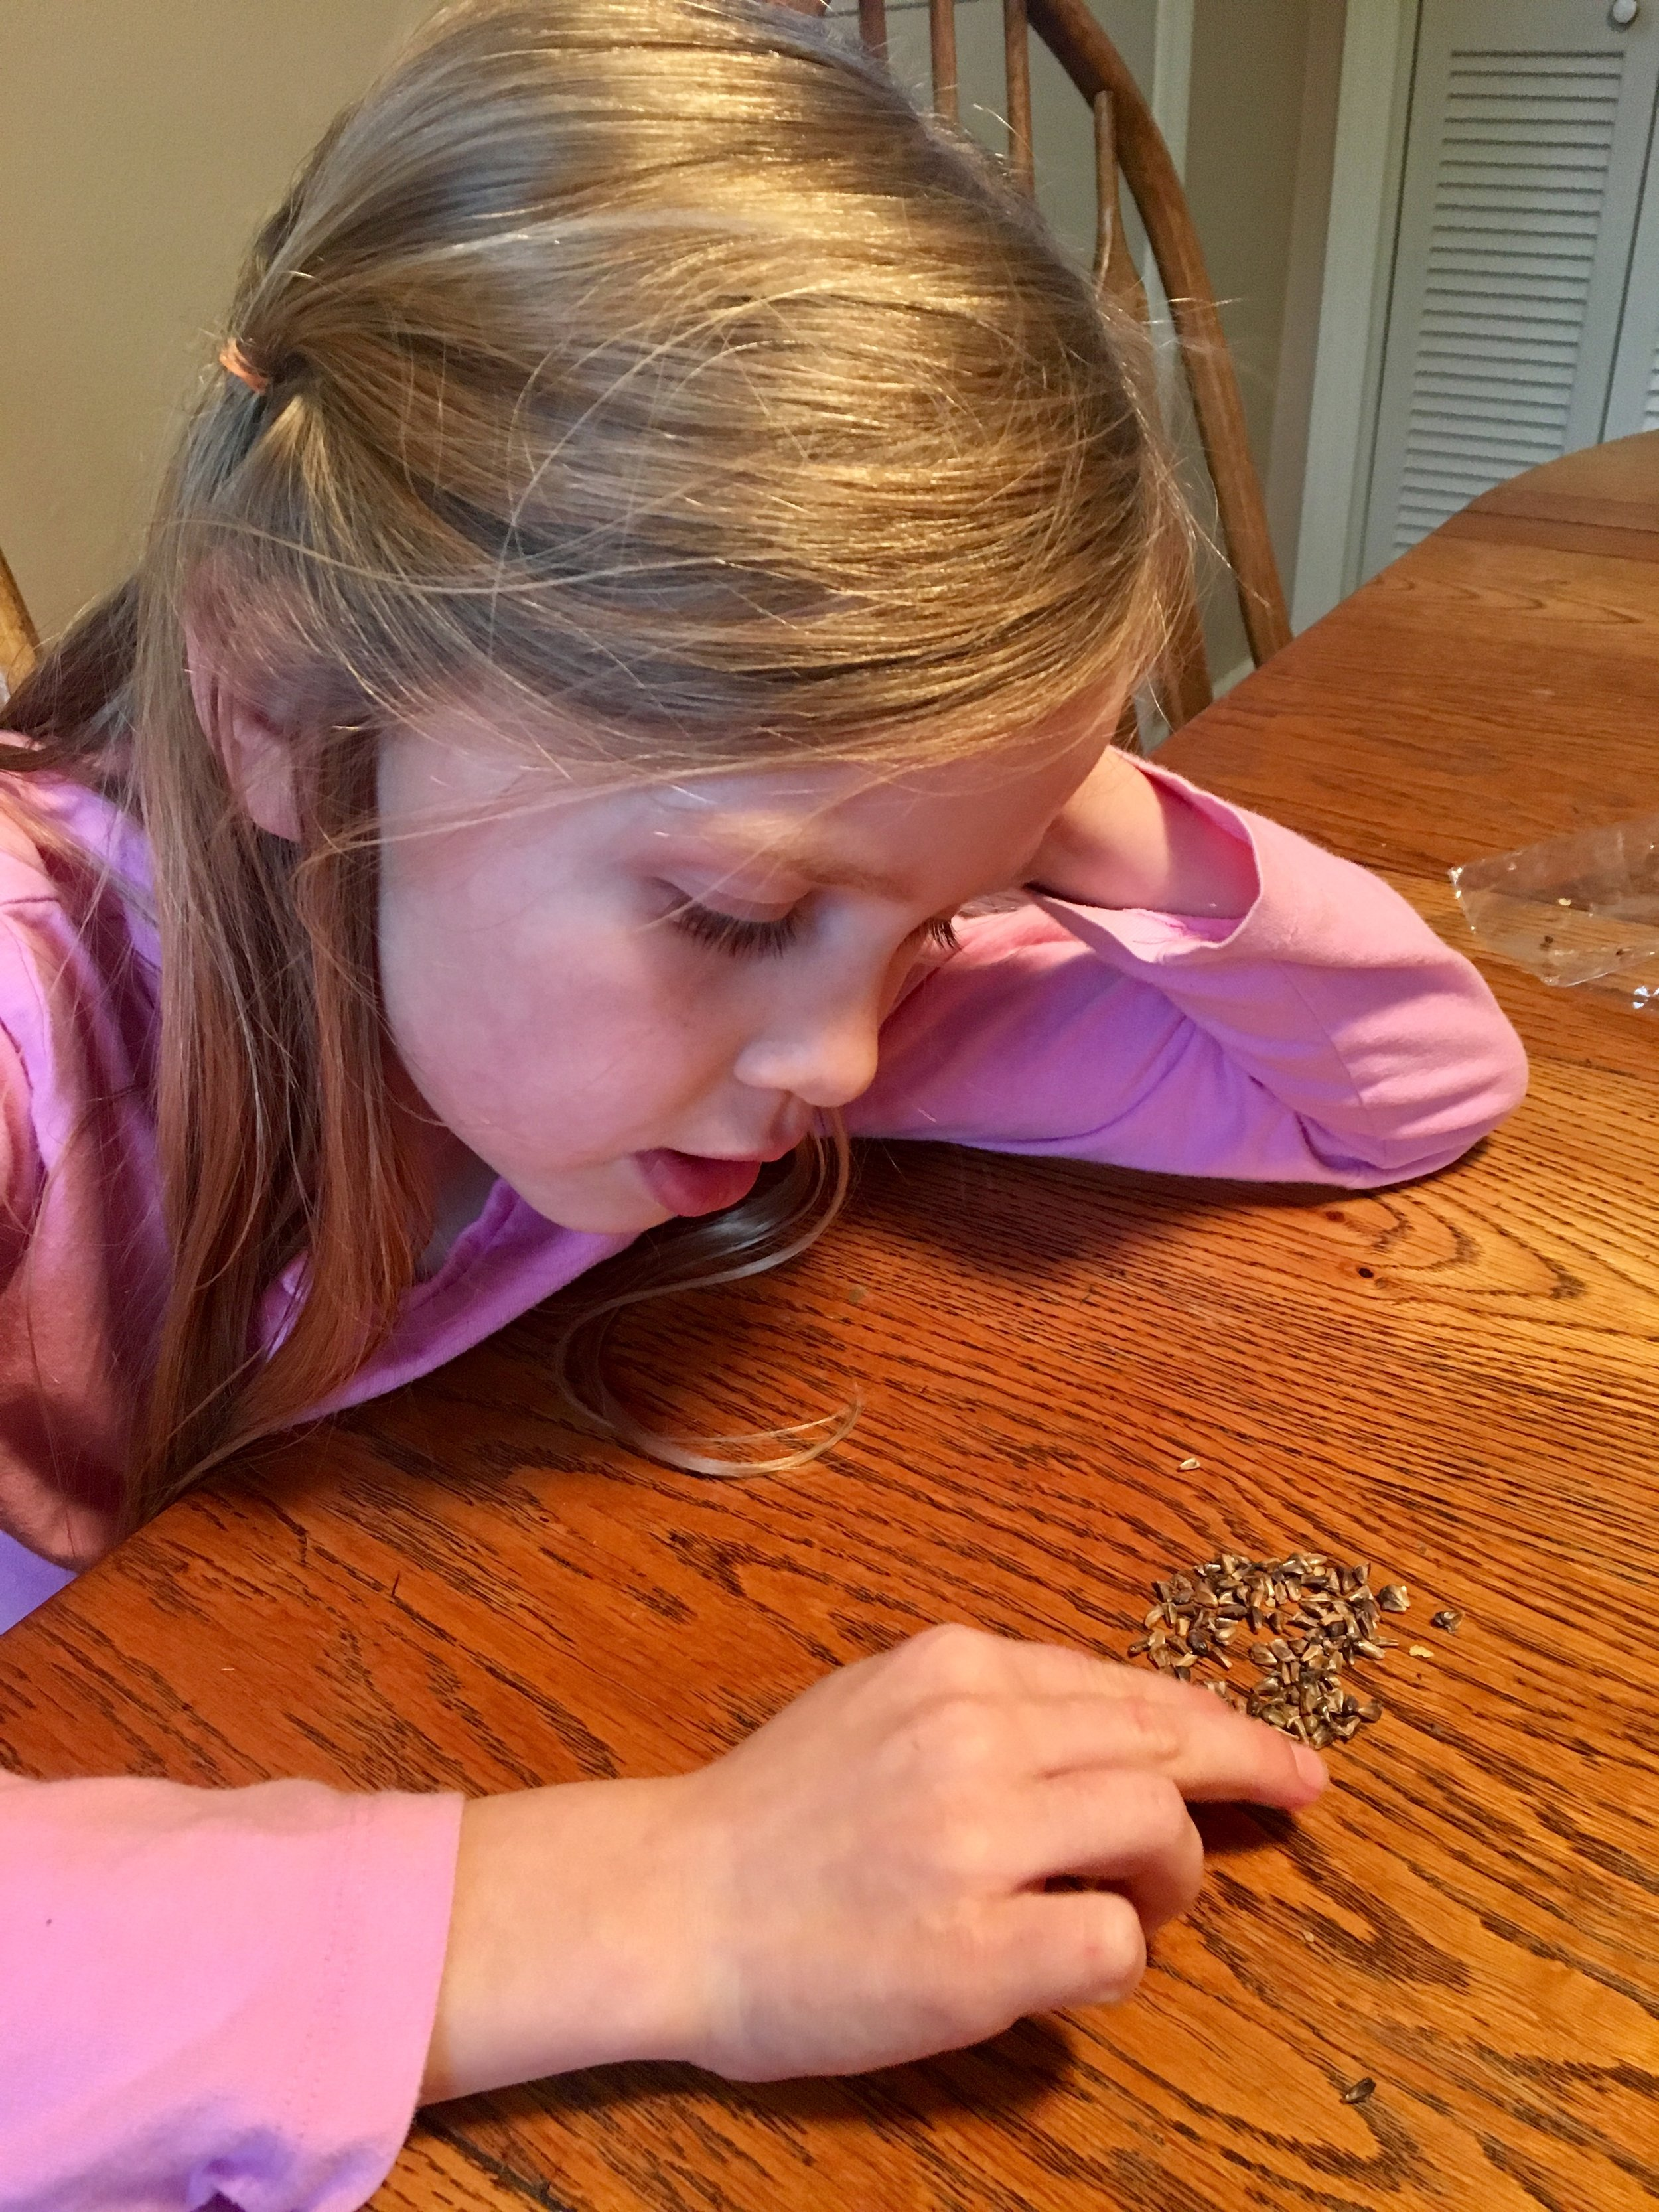 Counting out 10 seeds.